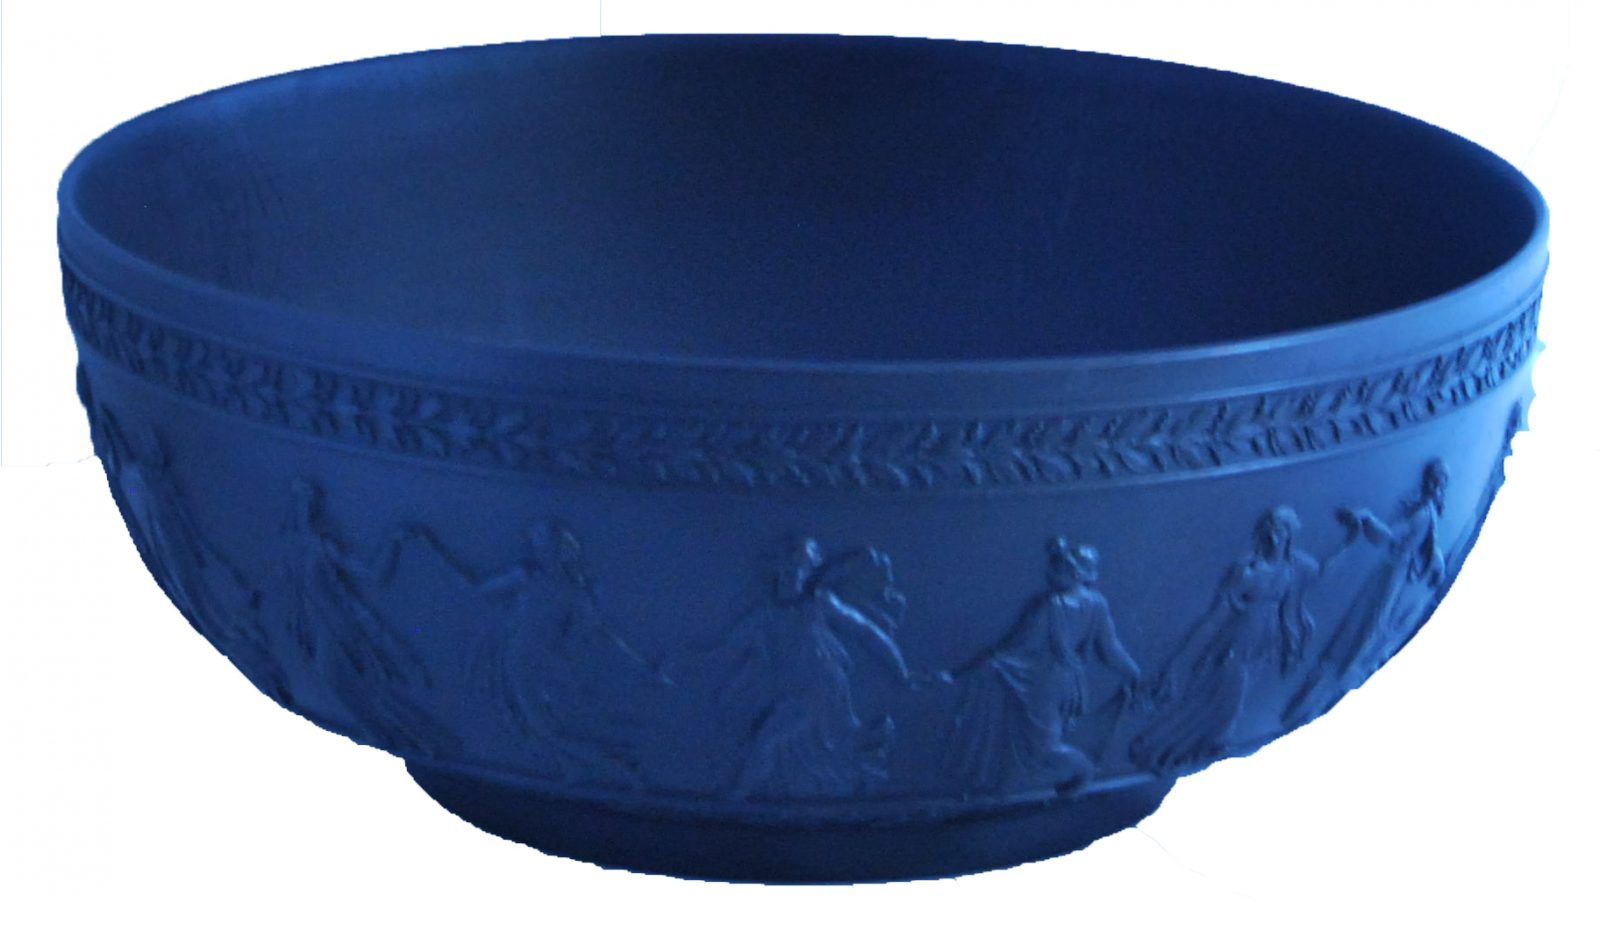 An illustrated list of Wedgwood Marks presented in chronological order